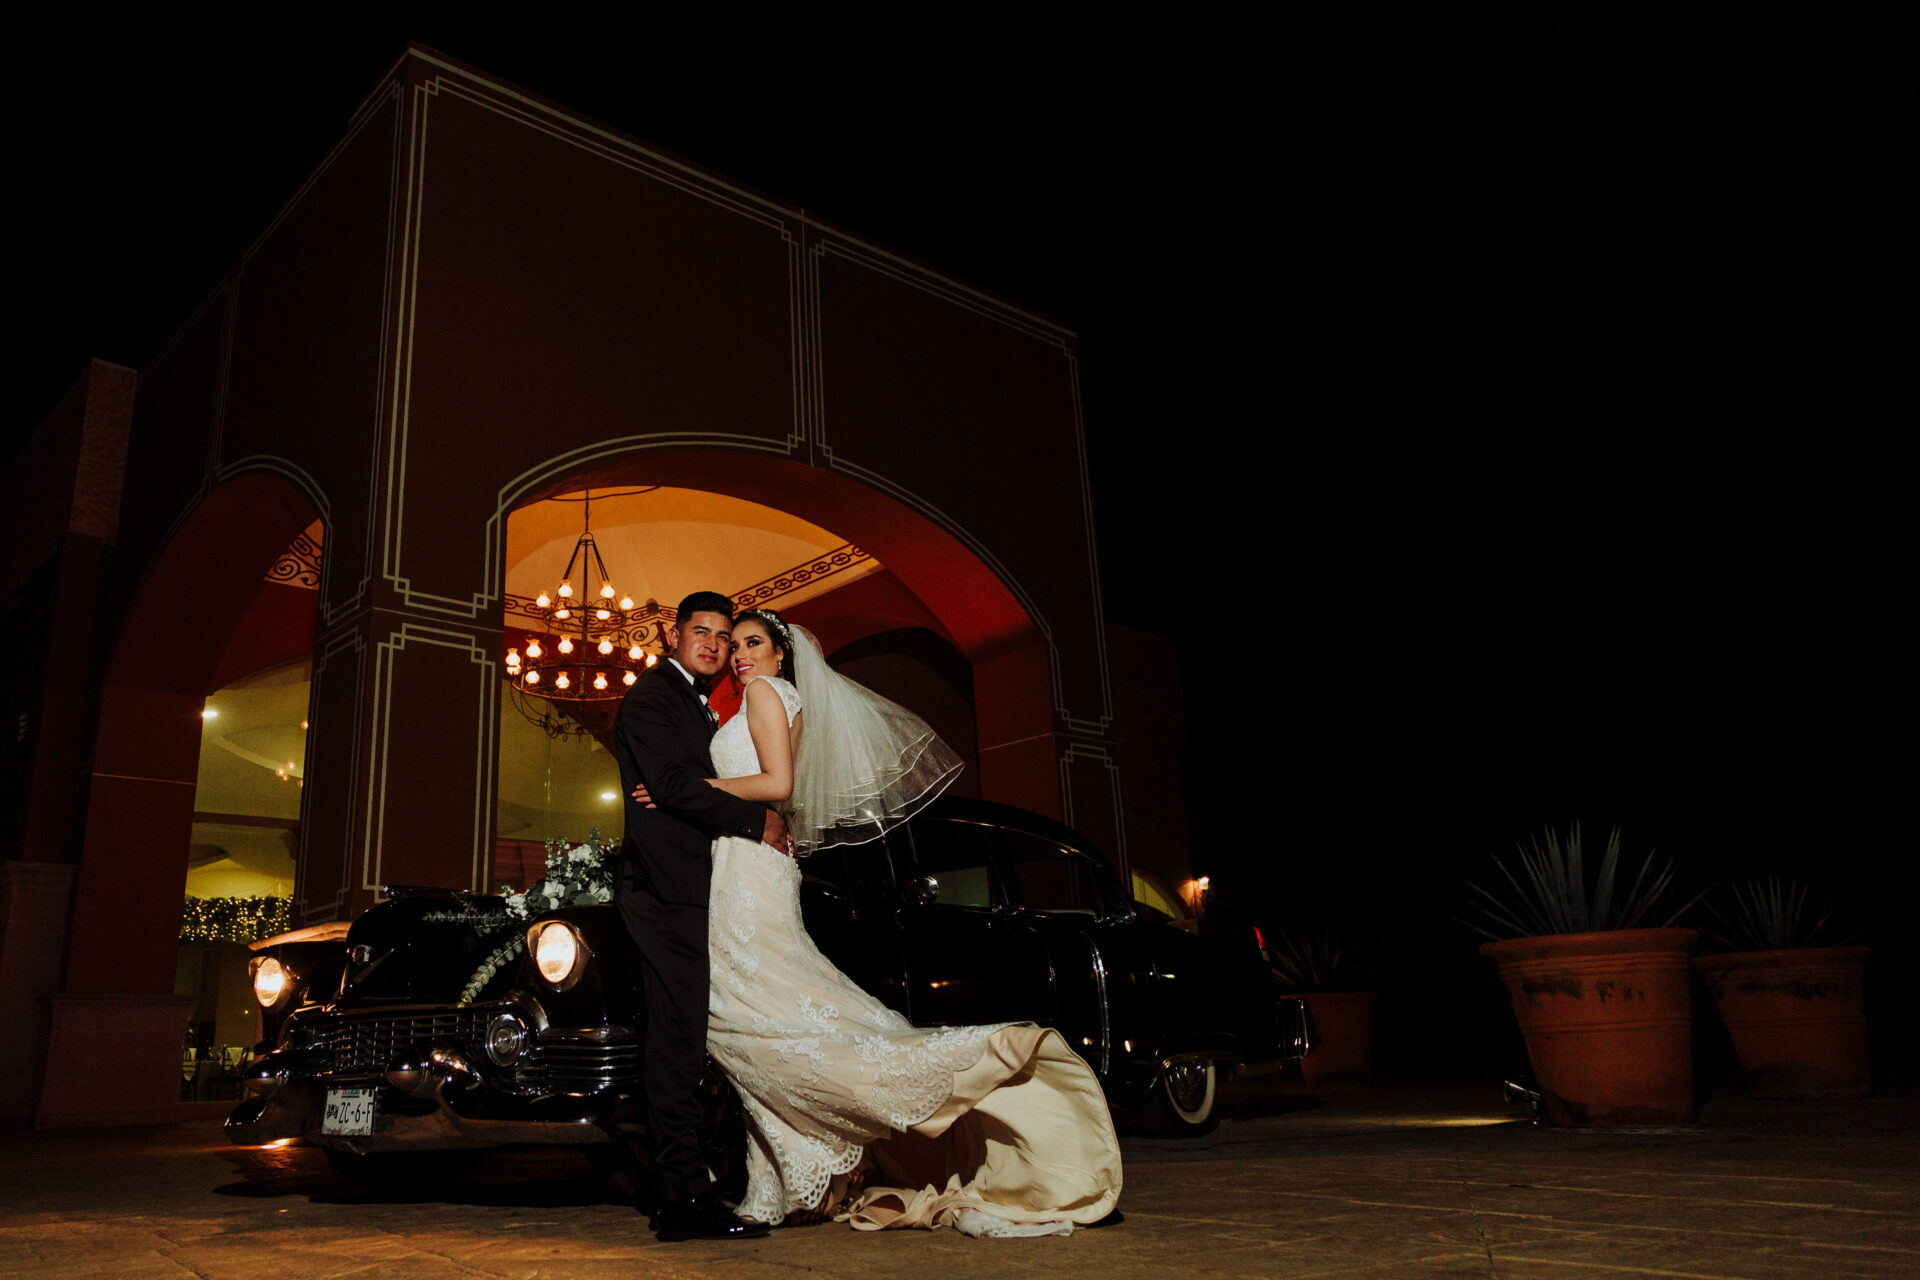 javier_noriega_fotografo_Boda_san_ramon_zacatecas_wedding_photographer17